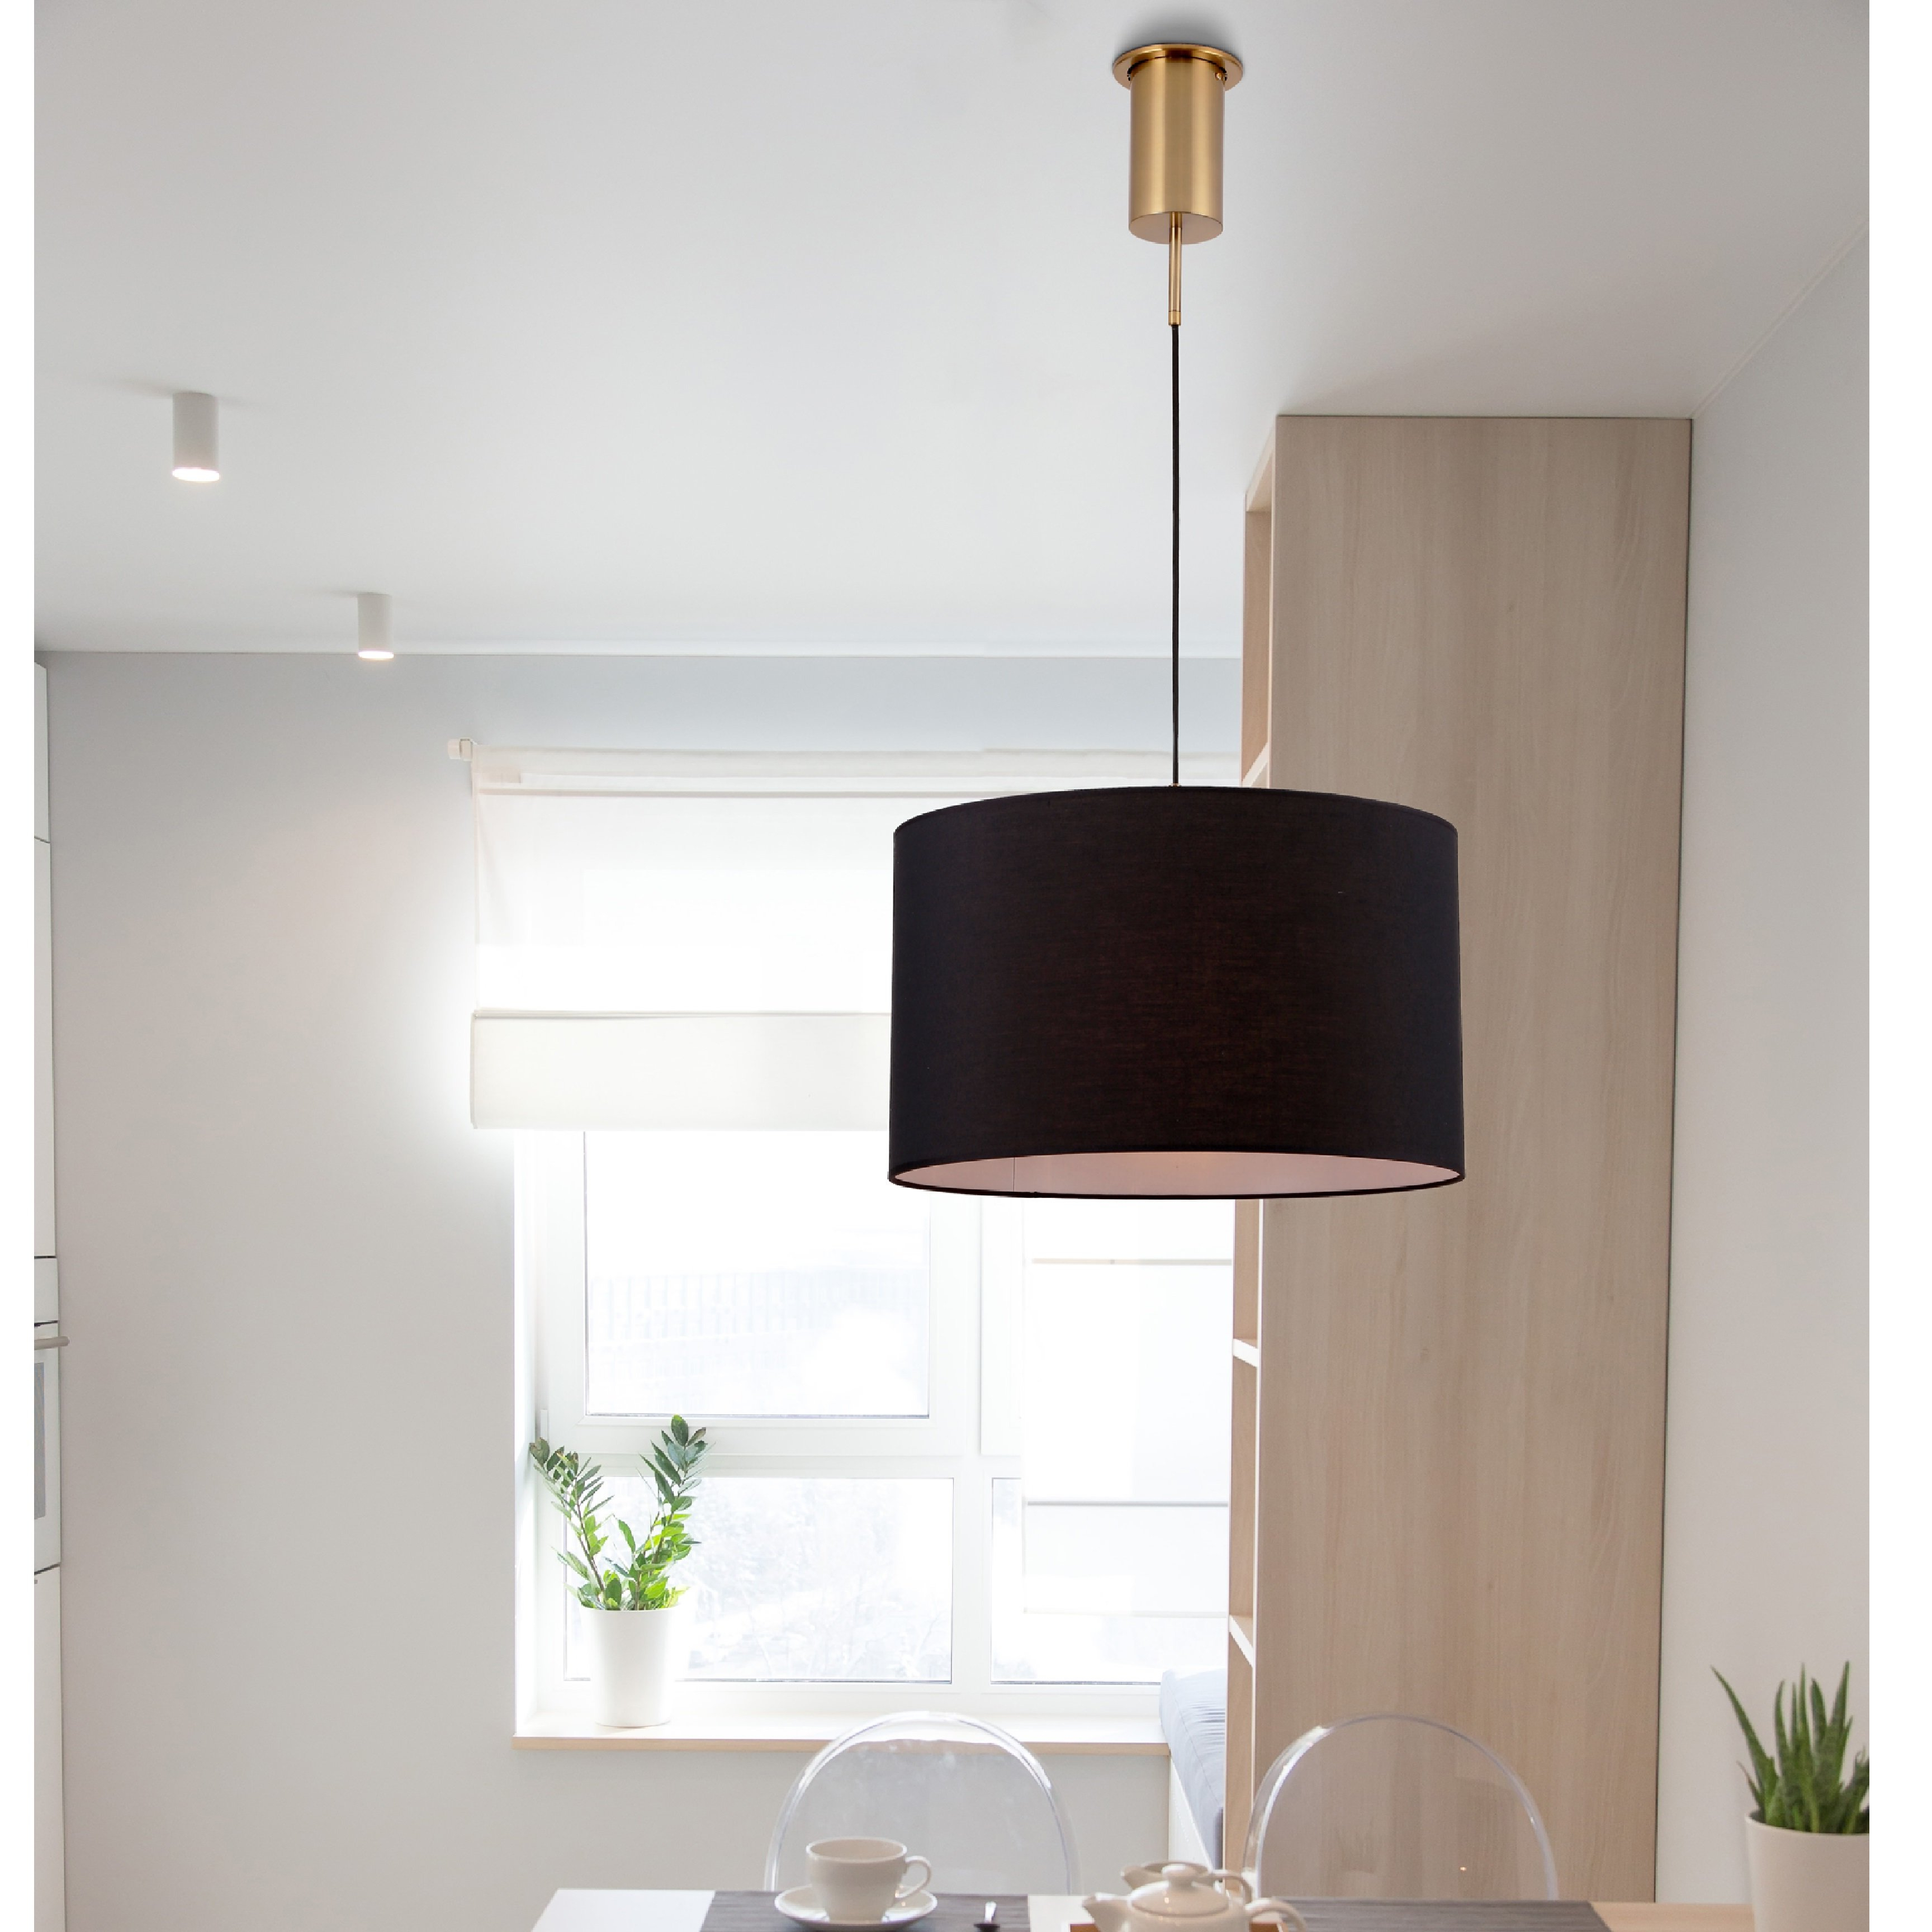 Hermione 1 Light Single Drum Pendants Within Favorite Drum Mini Pendants You'll Love In 2019 (Gallery 14 of 25)